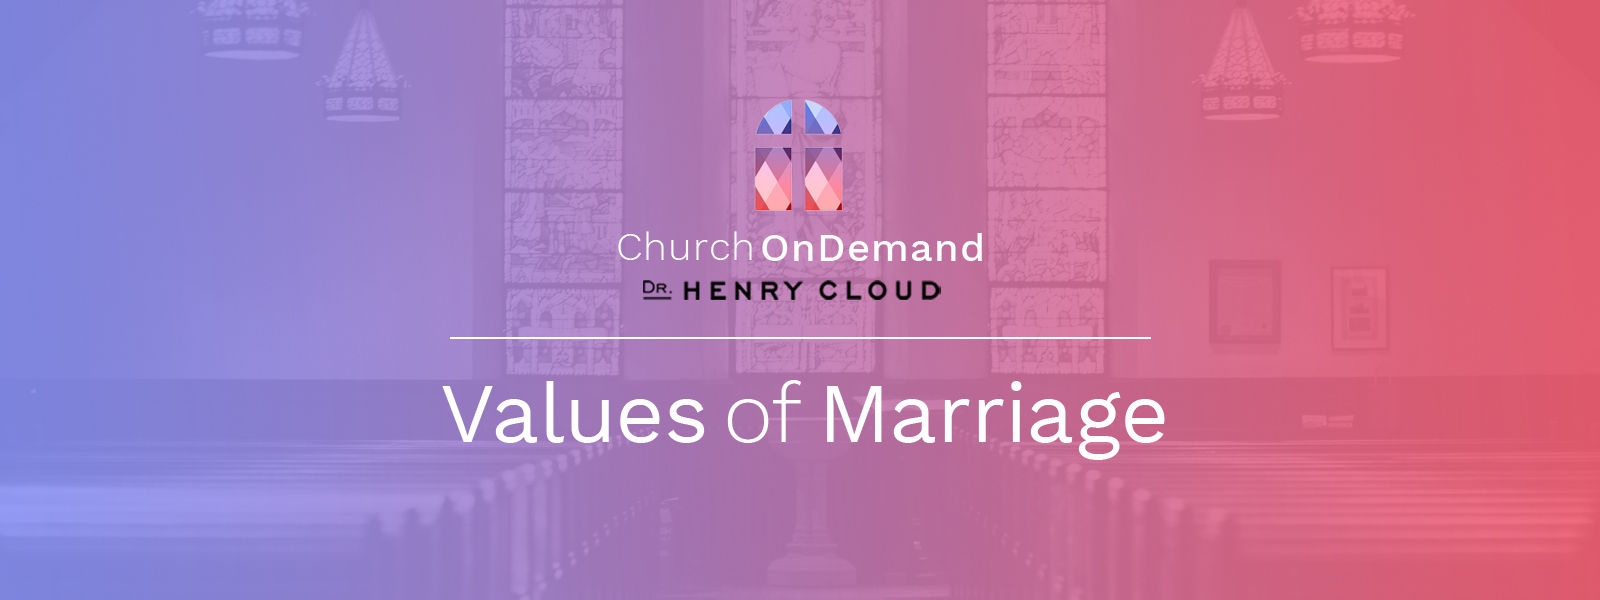 Values of Marriage